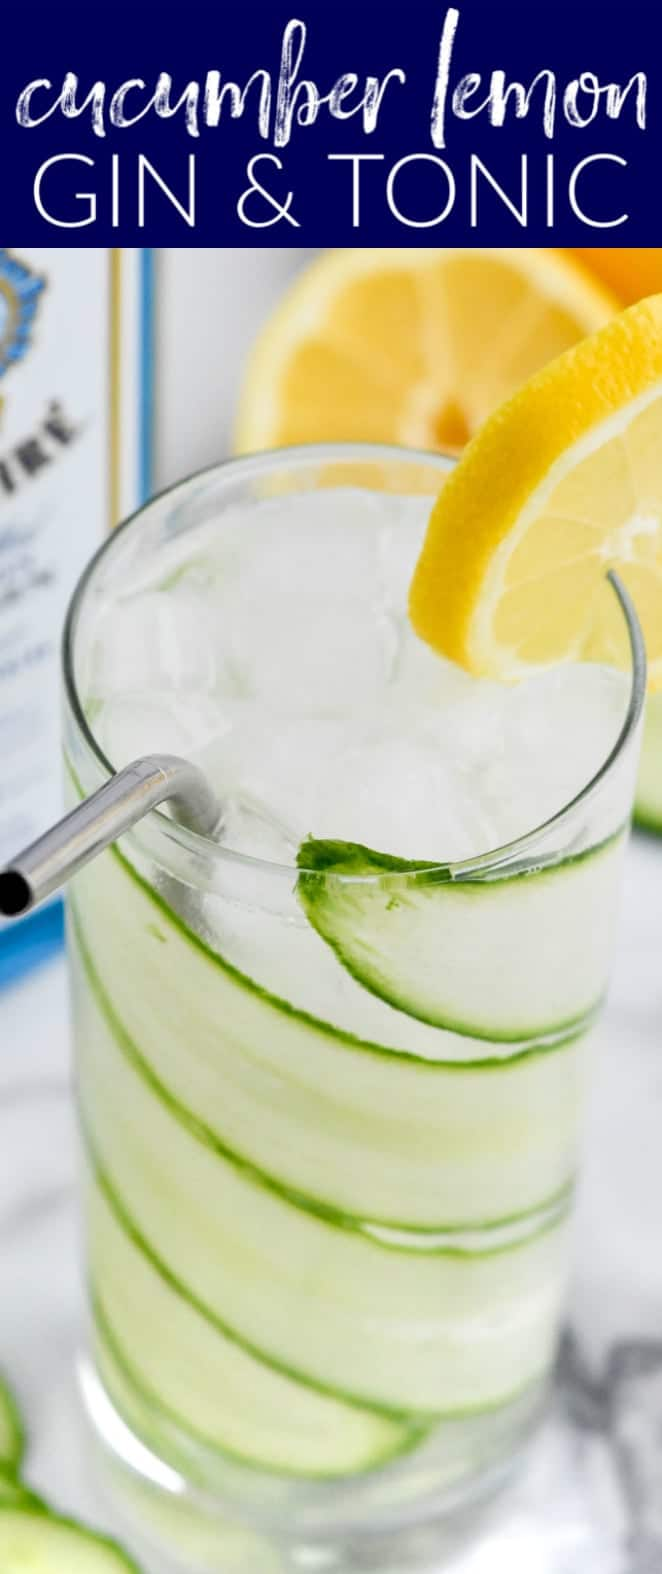 overhead view of a high ball glass with cucumber lemon gin and tonic and garnished with a lemon slice